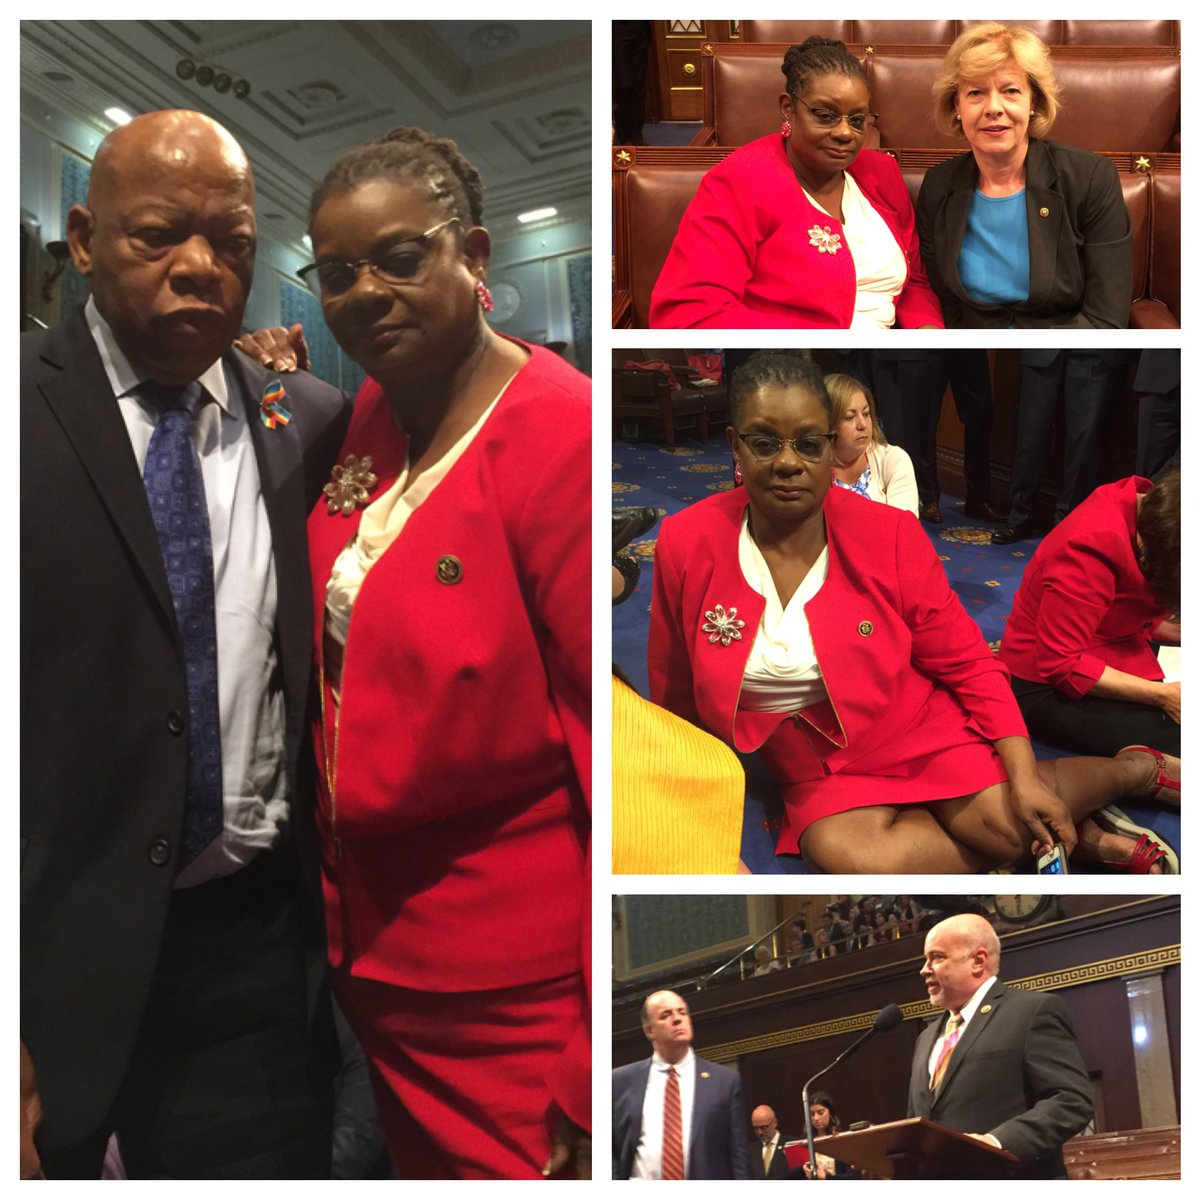 Wisconsin in the House. Proudly holding the floor w/ @repjohnlewis @repmarkpocan @SenatorBaldwin to #EndGunViolence! https://t.co/o1SkFyMpN2